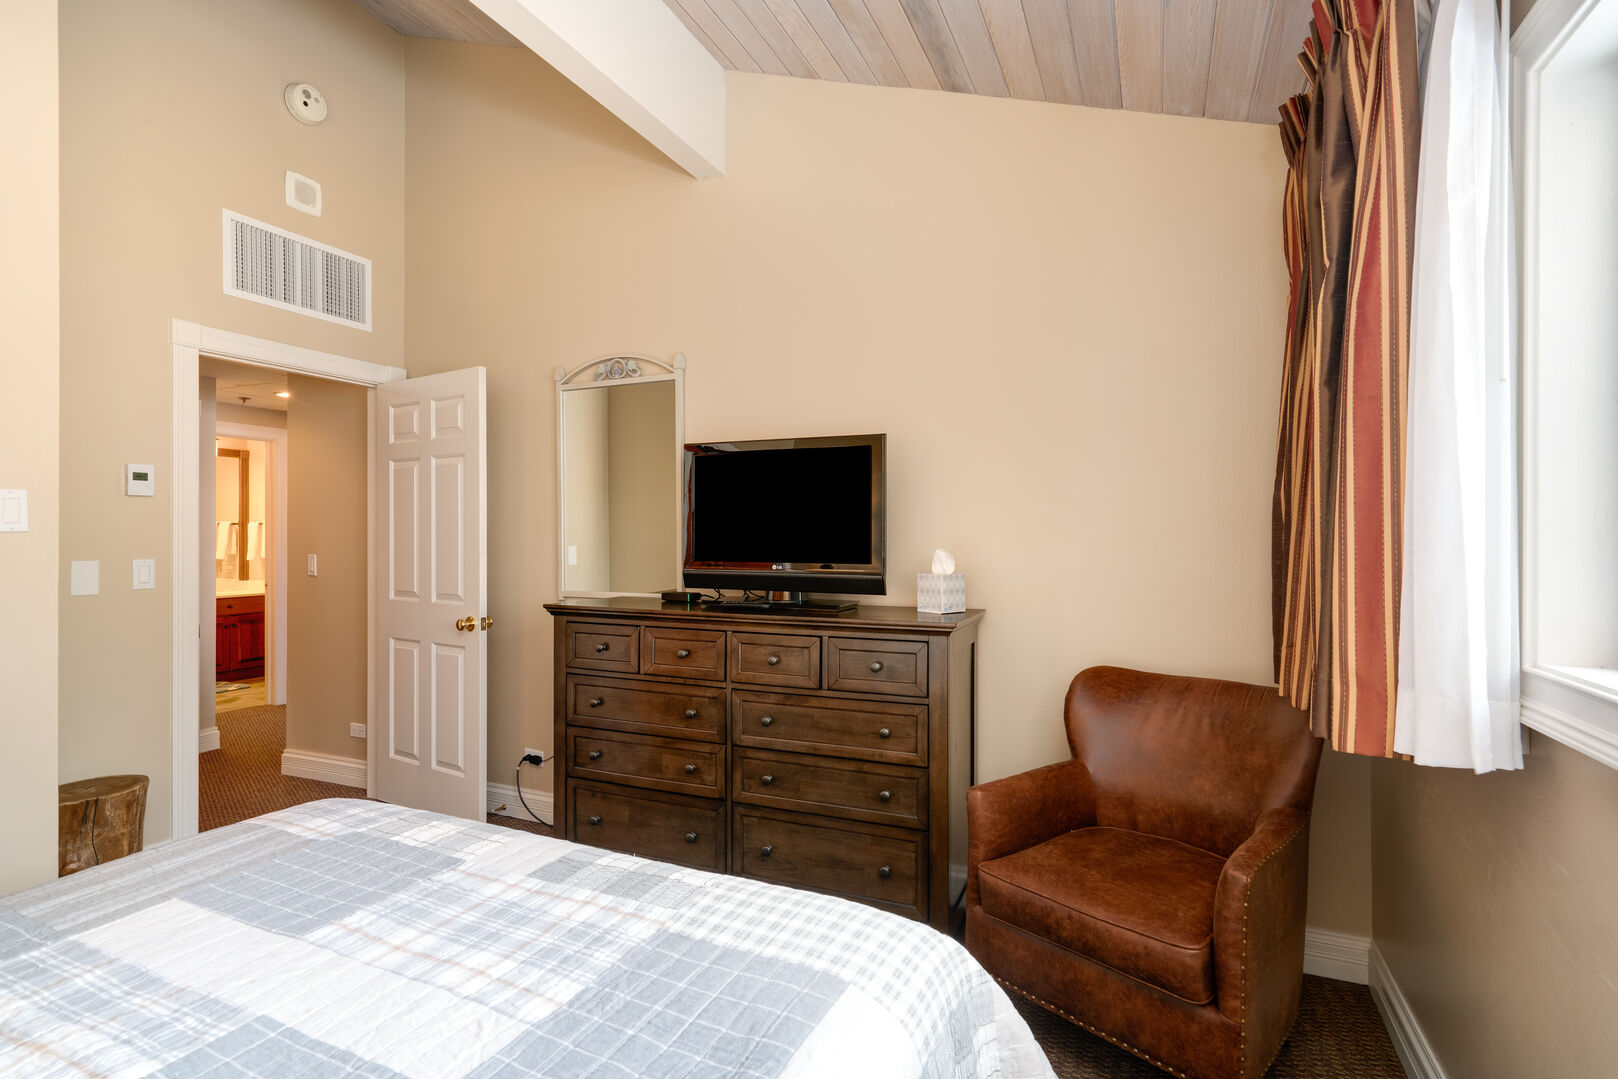 Also has a vaulted ceiling, TV